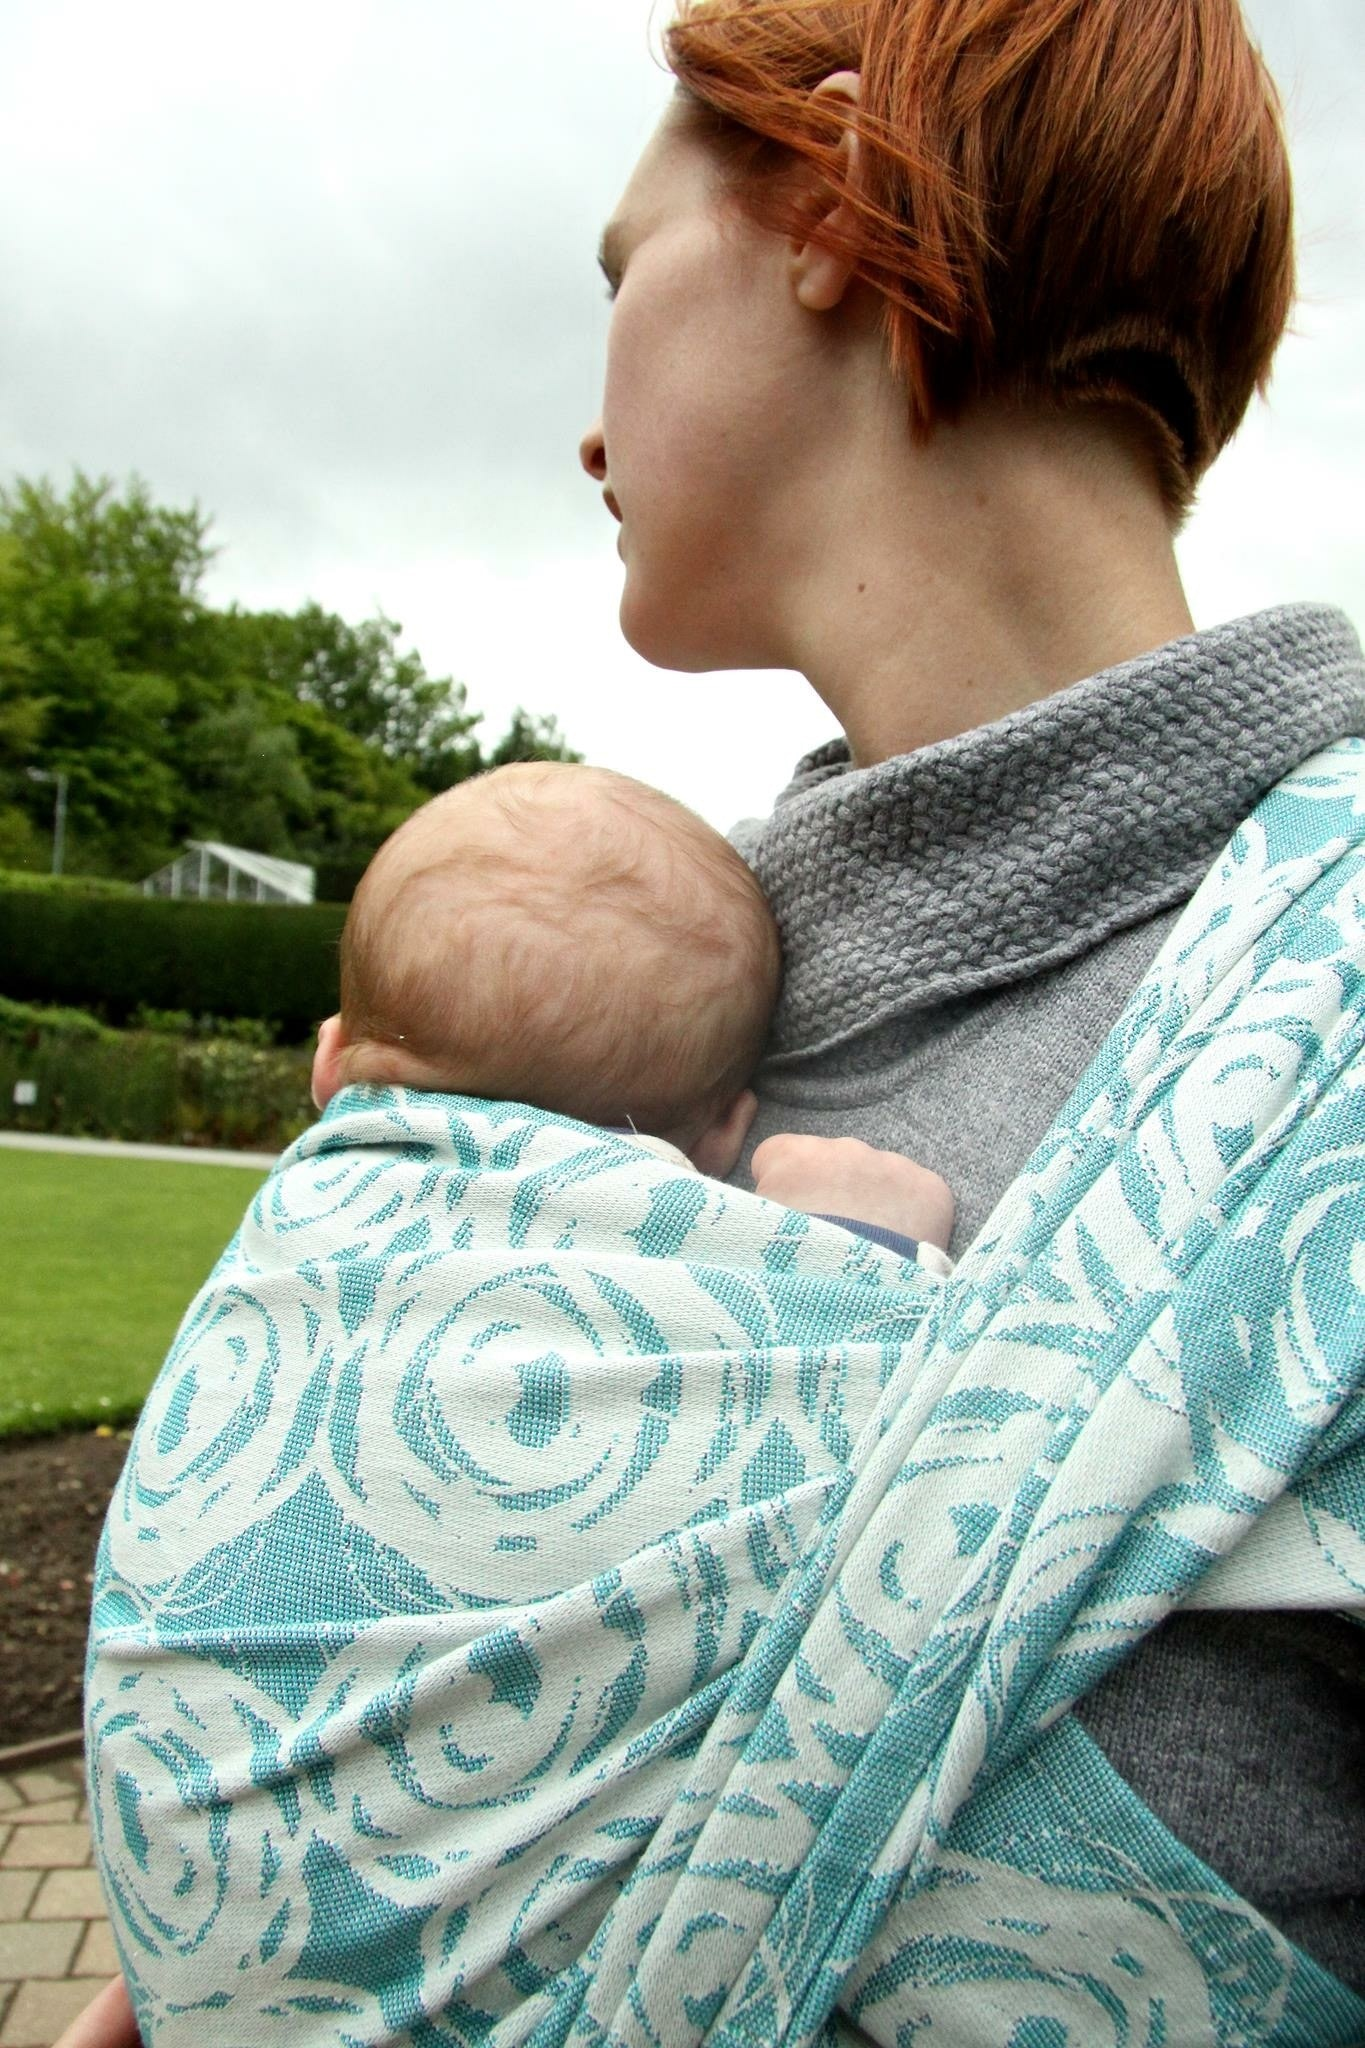 ce98b98f058 This Mom s Injury Shows That Babywearing While Cooking Could Be Incredibly  Dangerous